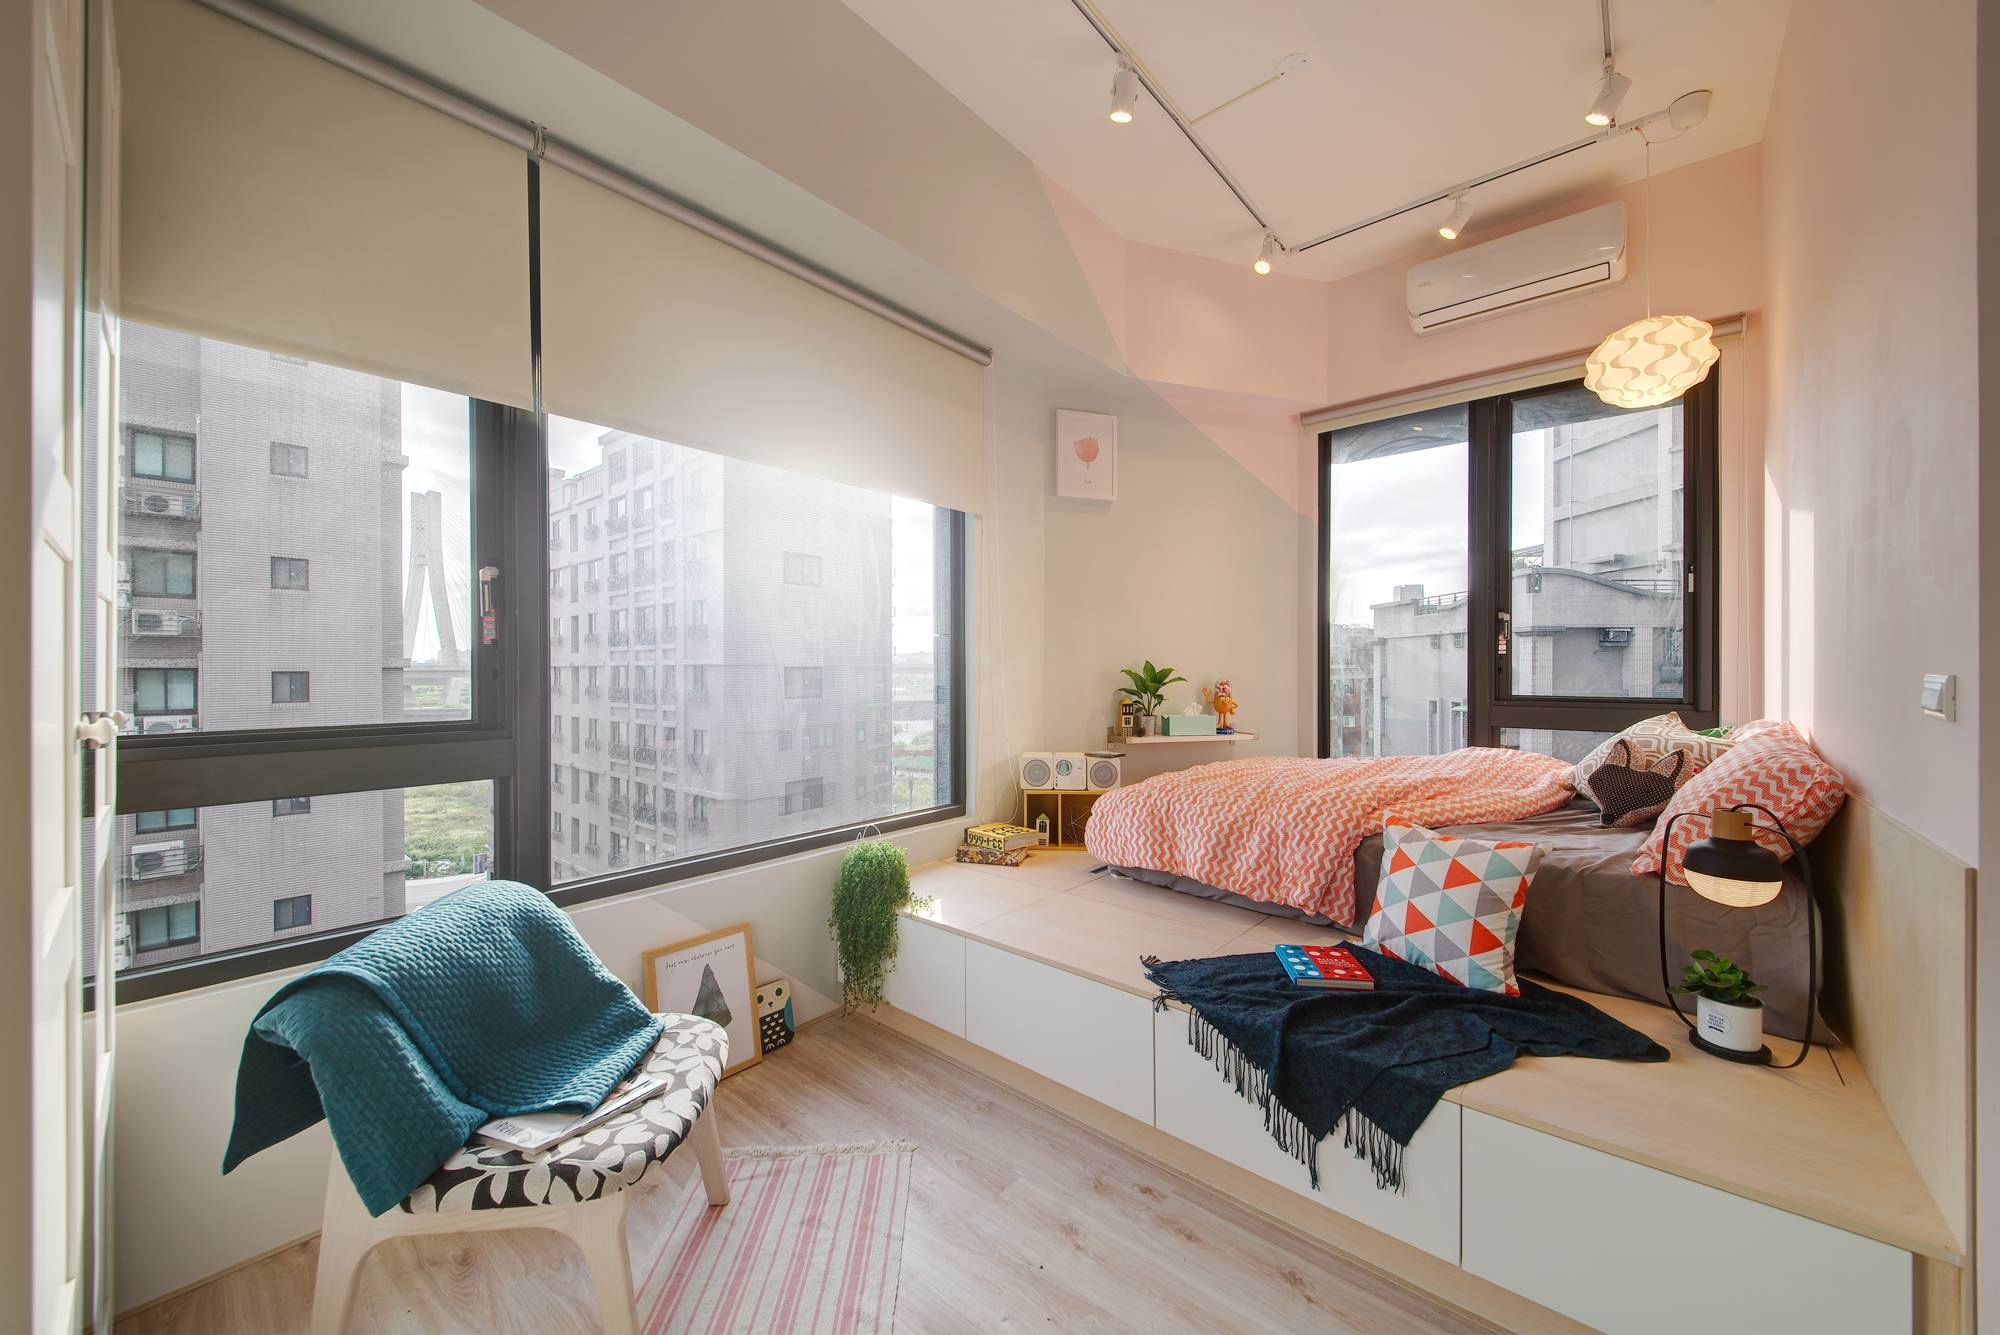 Compact apartment gets efficient, airy makeover in Taiwan - Curbed